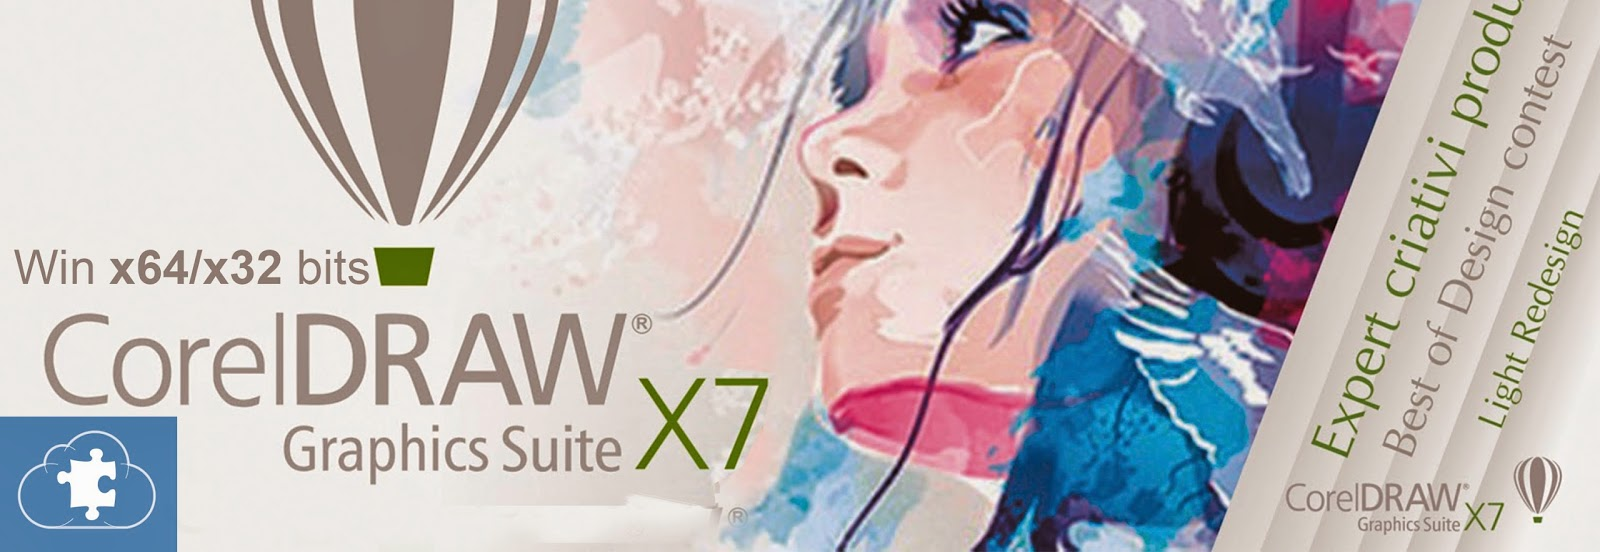 CorelDRAW Graphics Suite X7 | Win x64/x32 bits | ESPAÑOL - INGLES